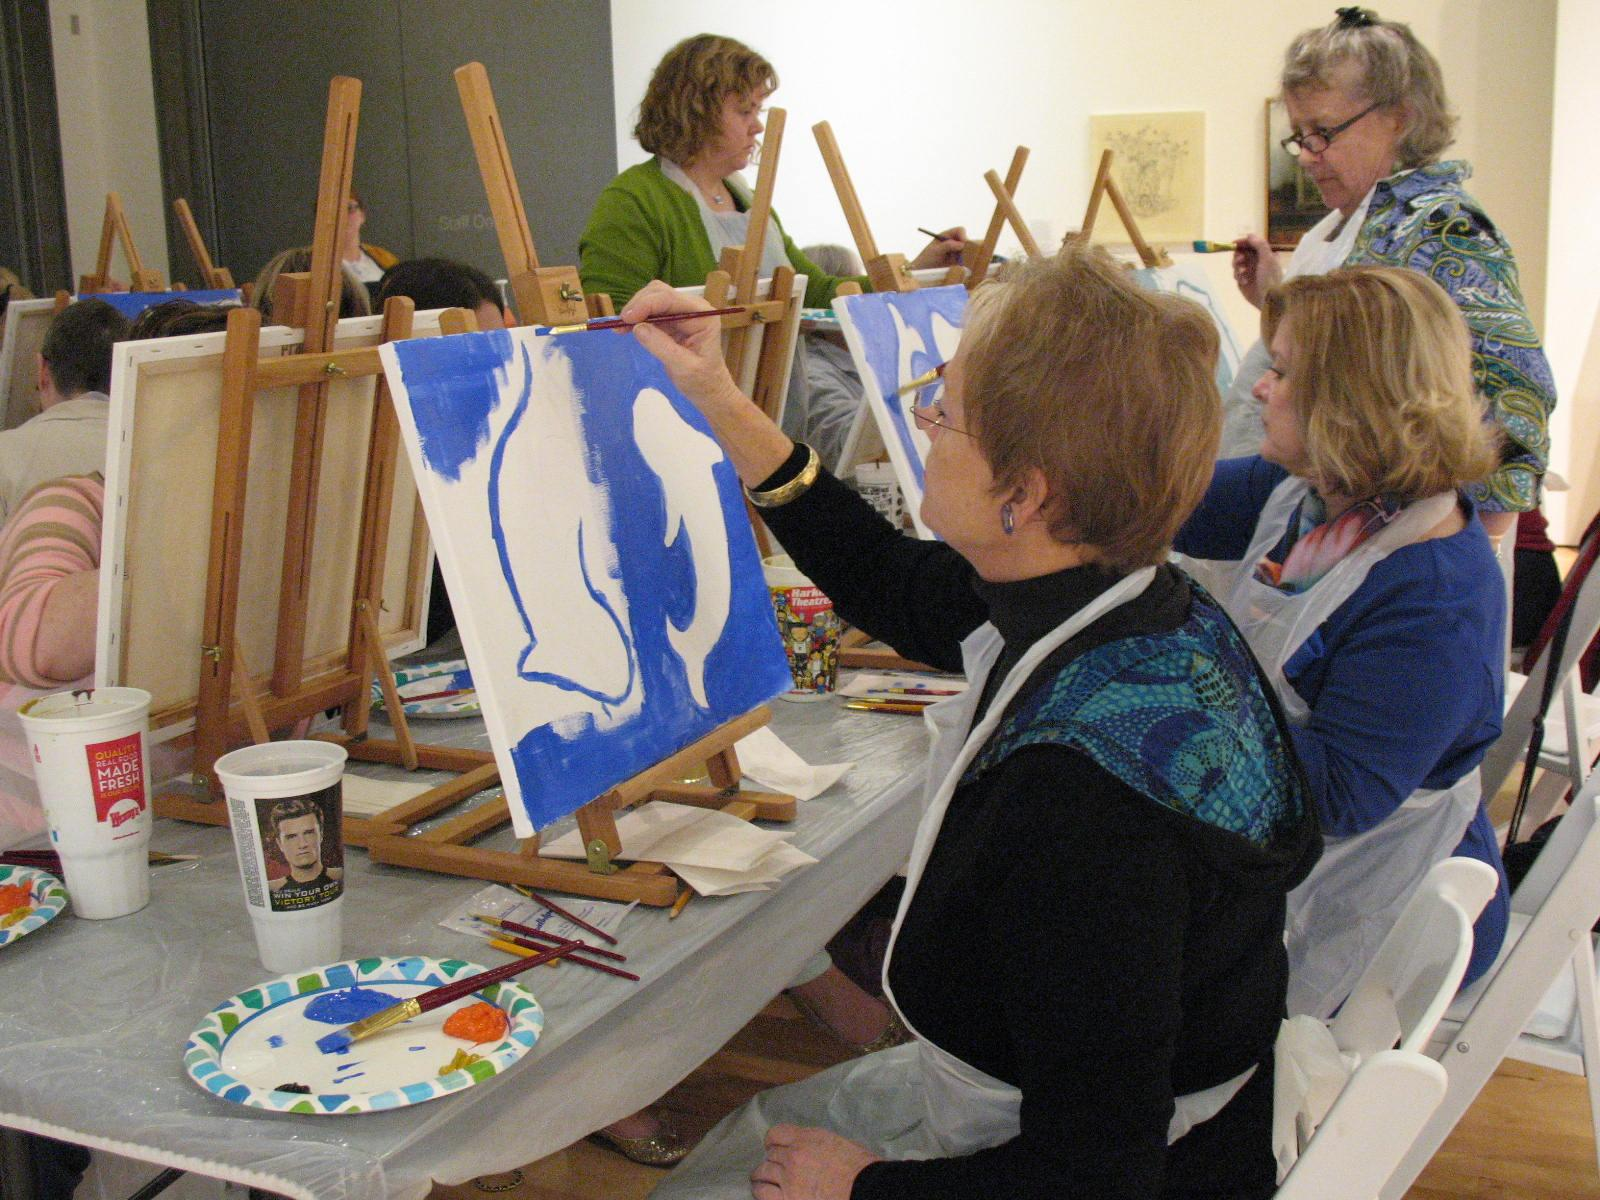 At the Art After Work class, participants learn to paint famous pieces of art as a way to wind down from a long day of hard work. Participants at any skill level are invited to join the class.